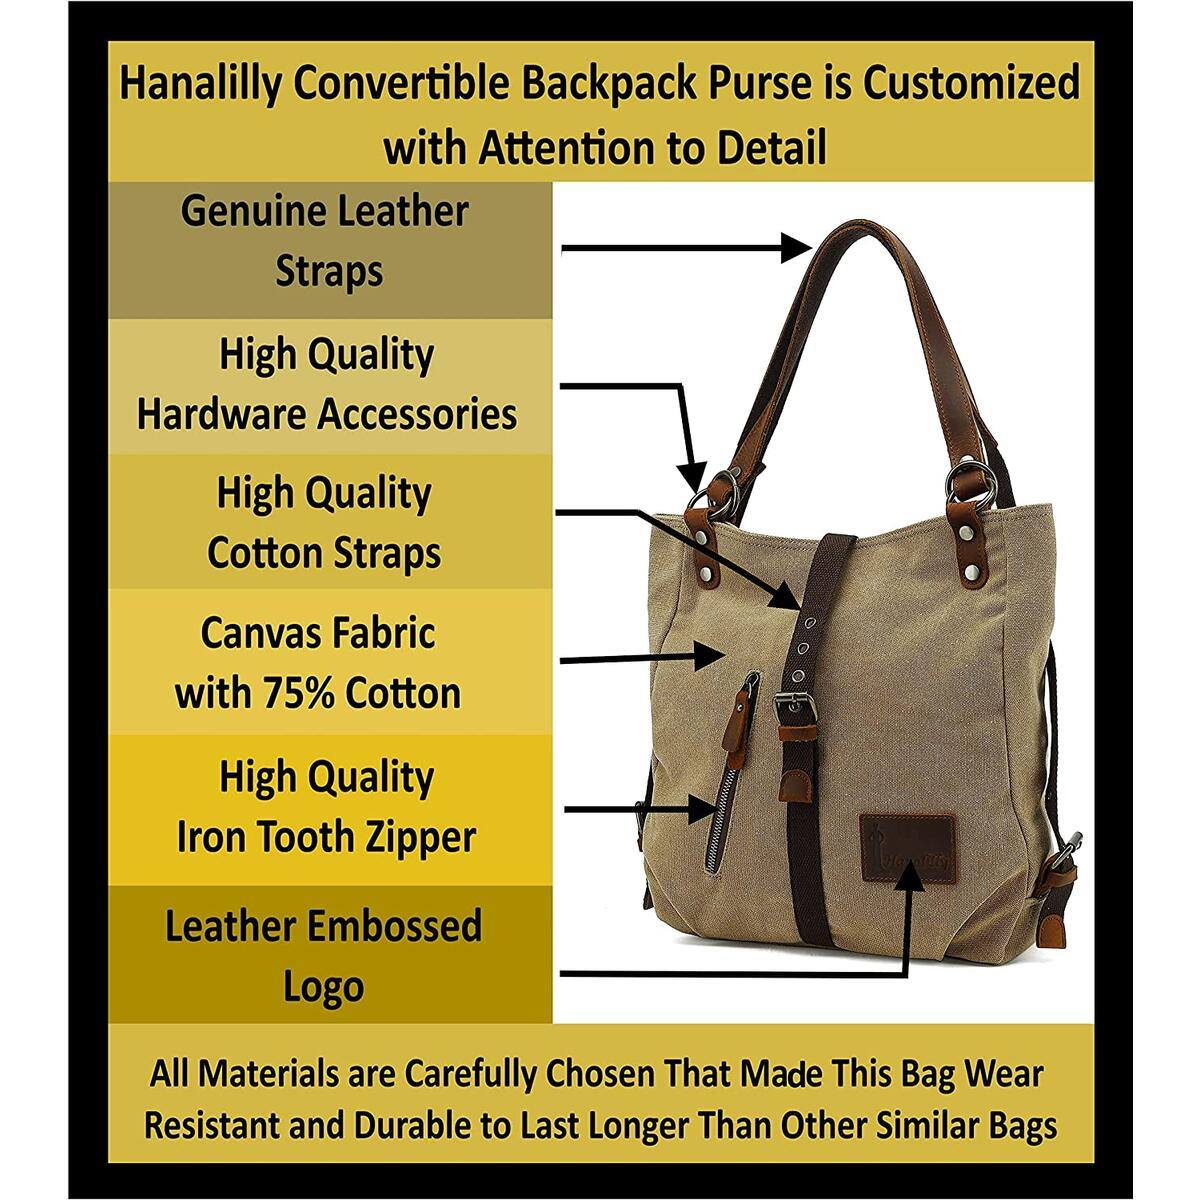 Hanalilly Convertible Backpack Purse / Genuine Leather & Canvas